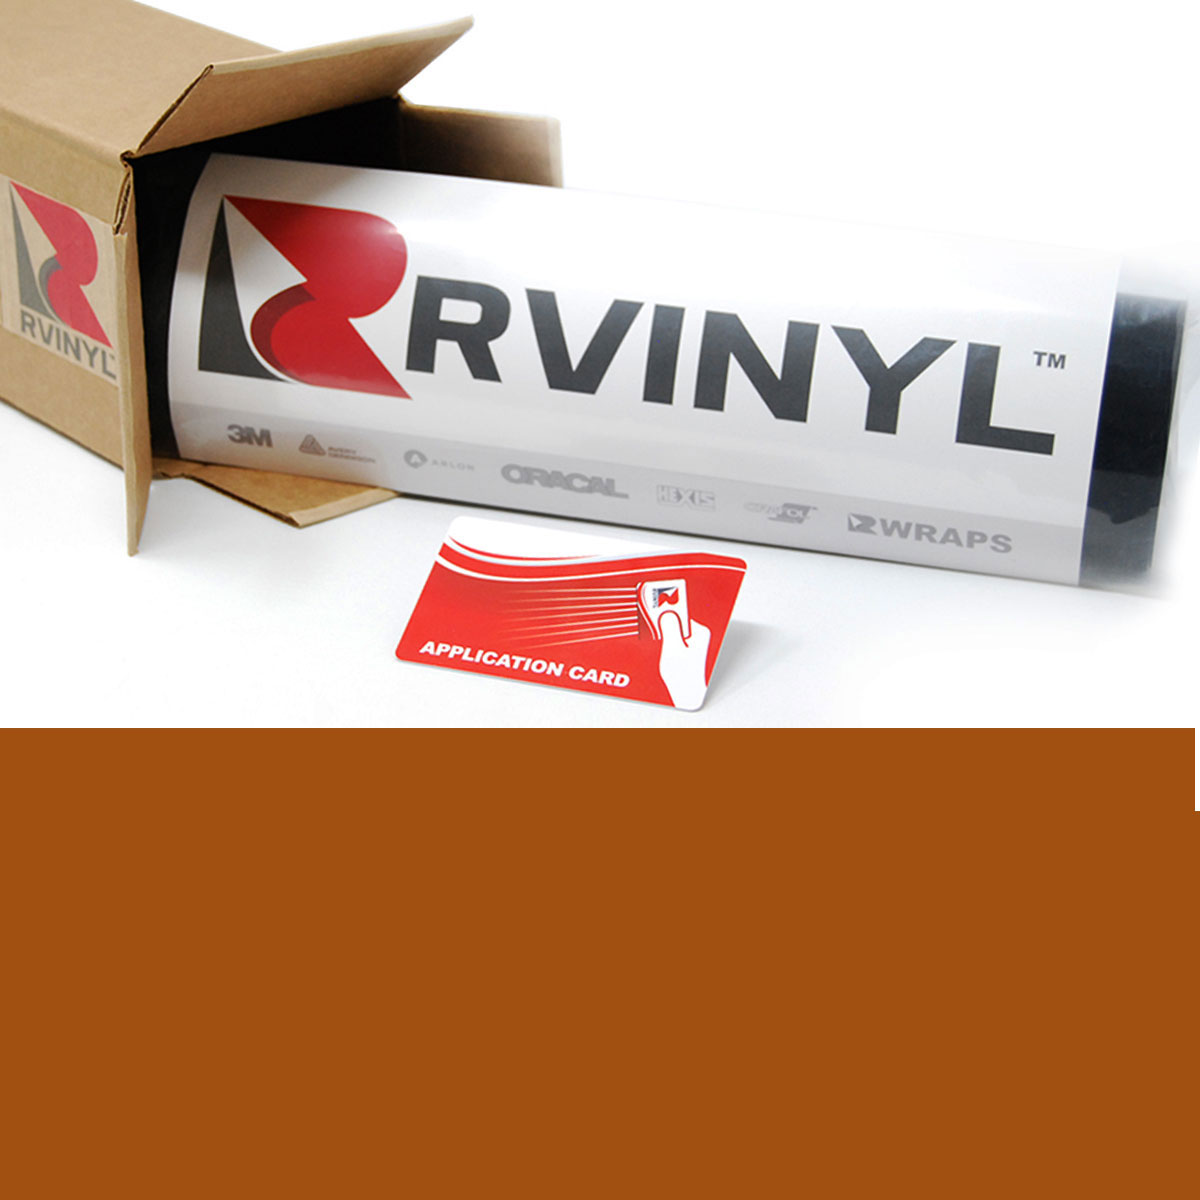 3M 7125 Scotchcal Terra Cotta Vinyl Film